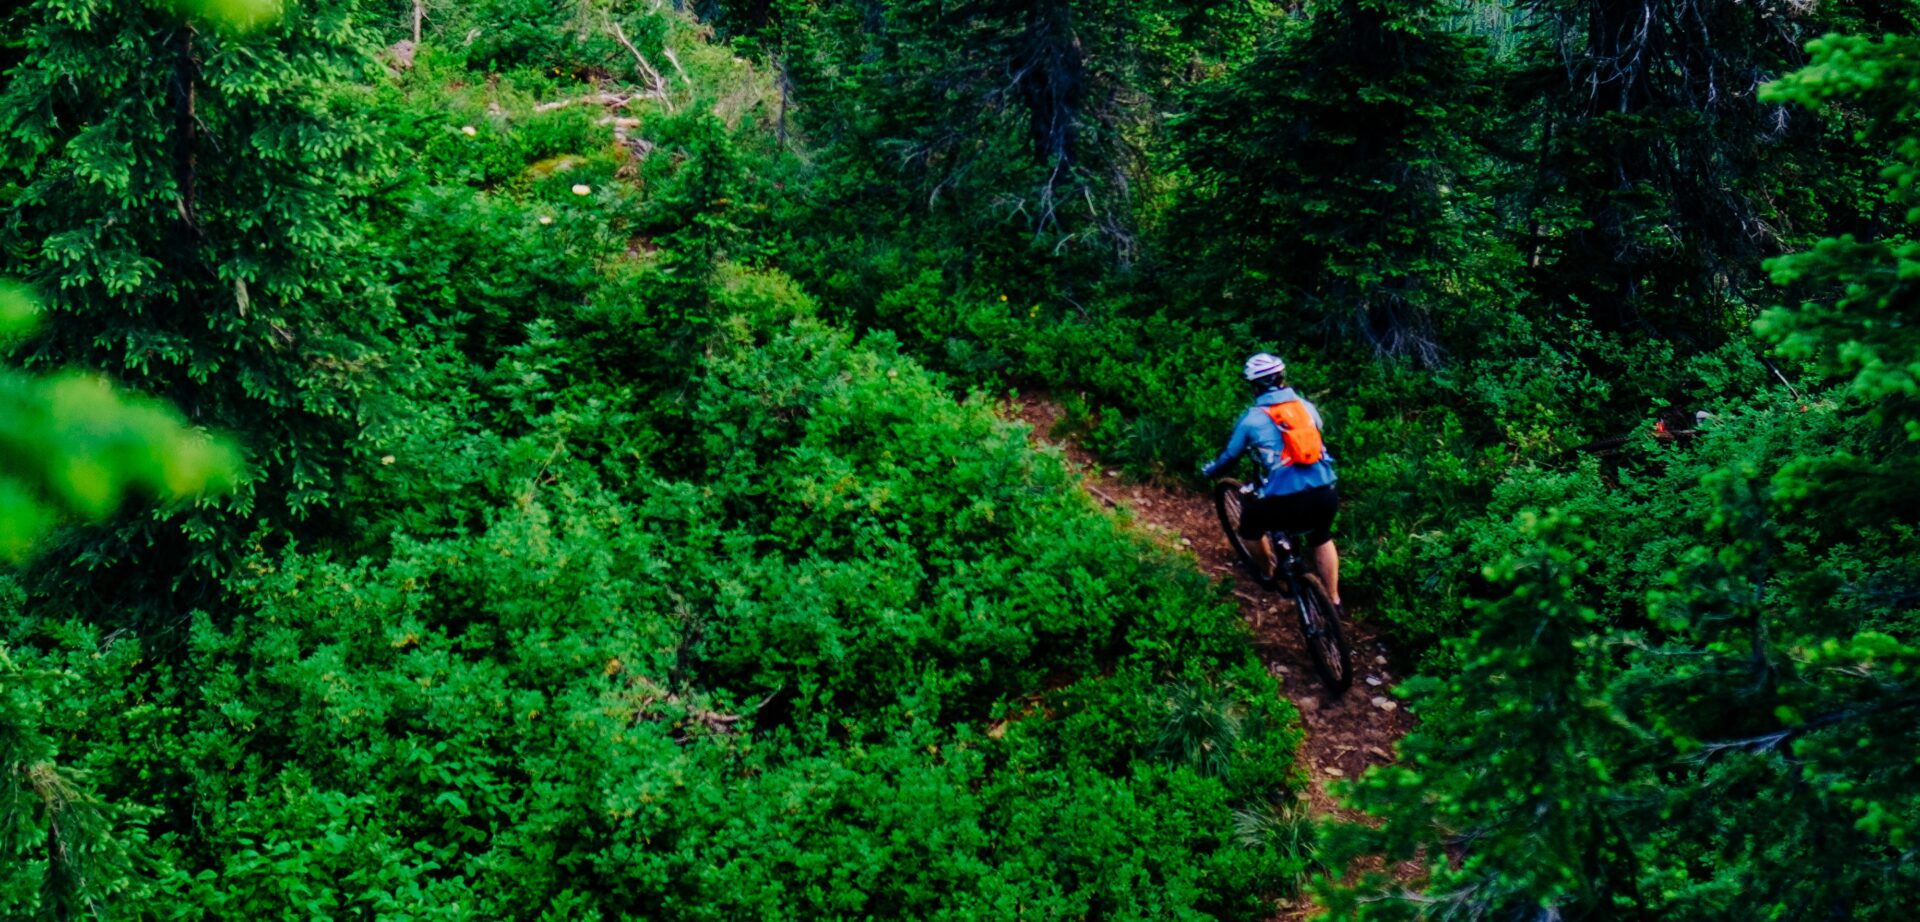 Woman mountain biking around the corner of a forested dirt trail.